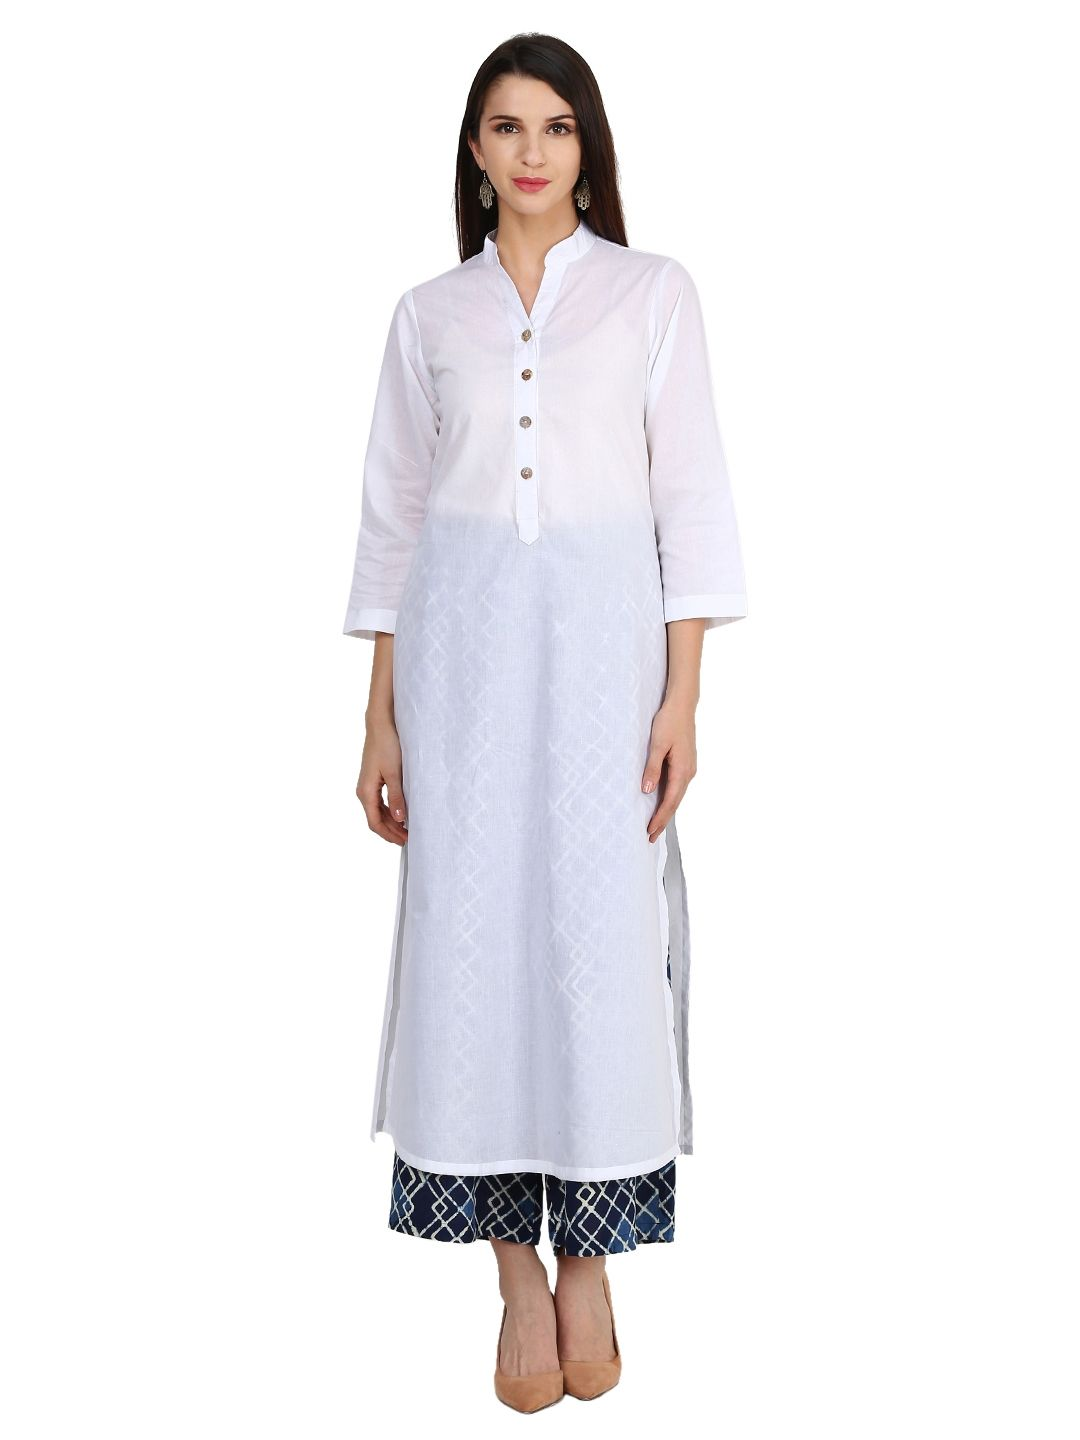 Look like a dream wearing kurta palazzo set from Castle. This off white cotton Kurta pair up with Navy Blue Printed rayon palazzo is perfect Casual wear. Surely fetch you compliments for your rich sense of style.